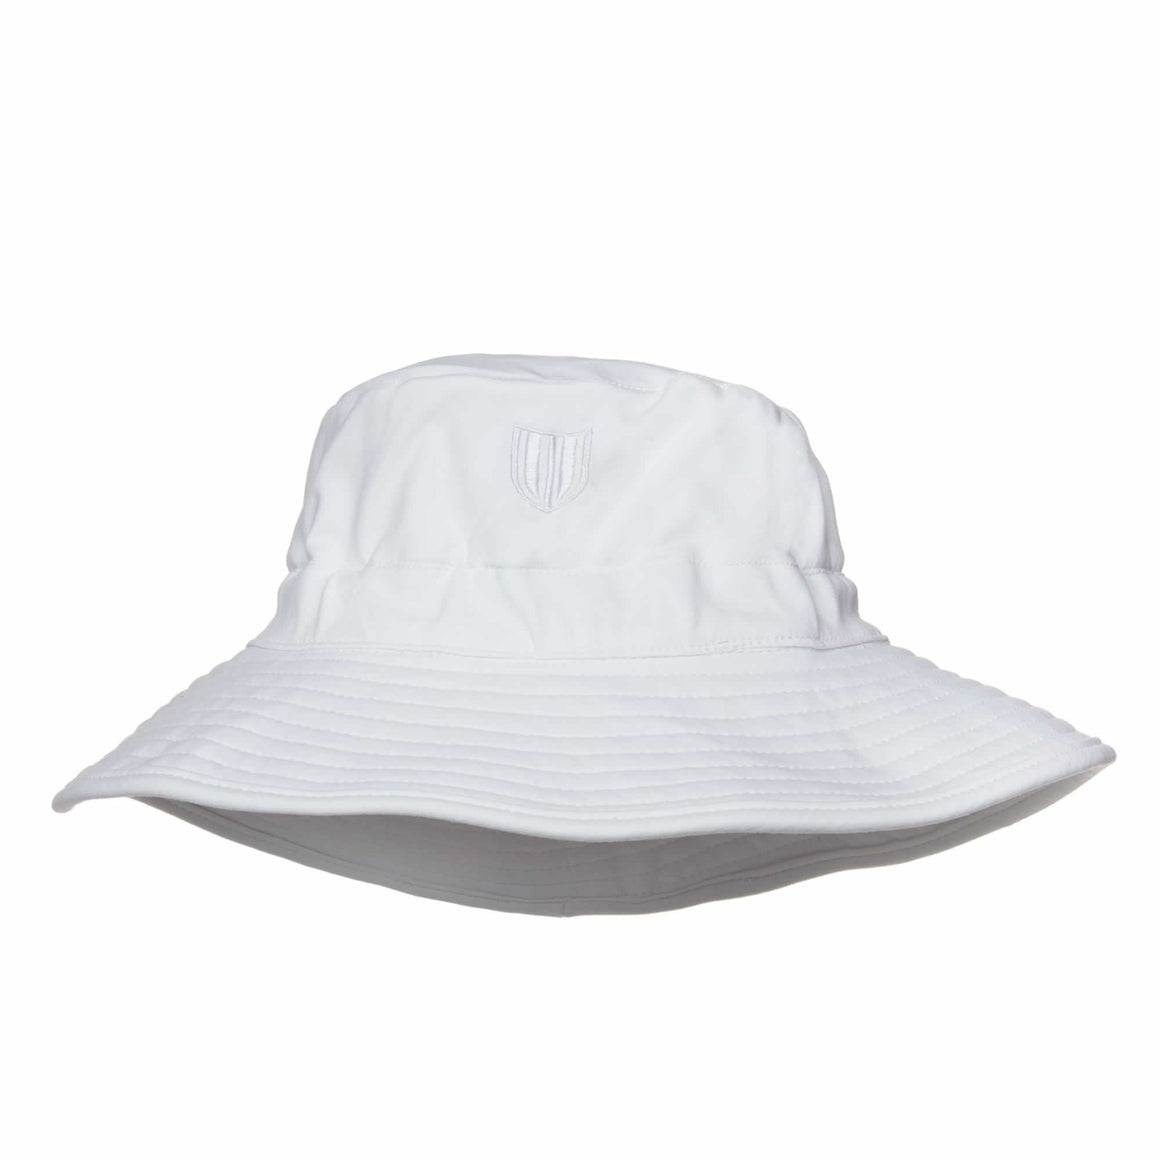 Womens White Bucket Hat - UV-Blocker